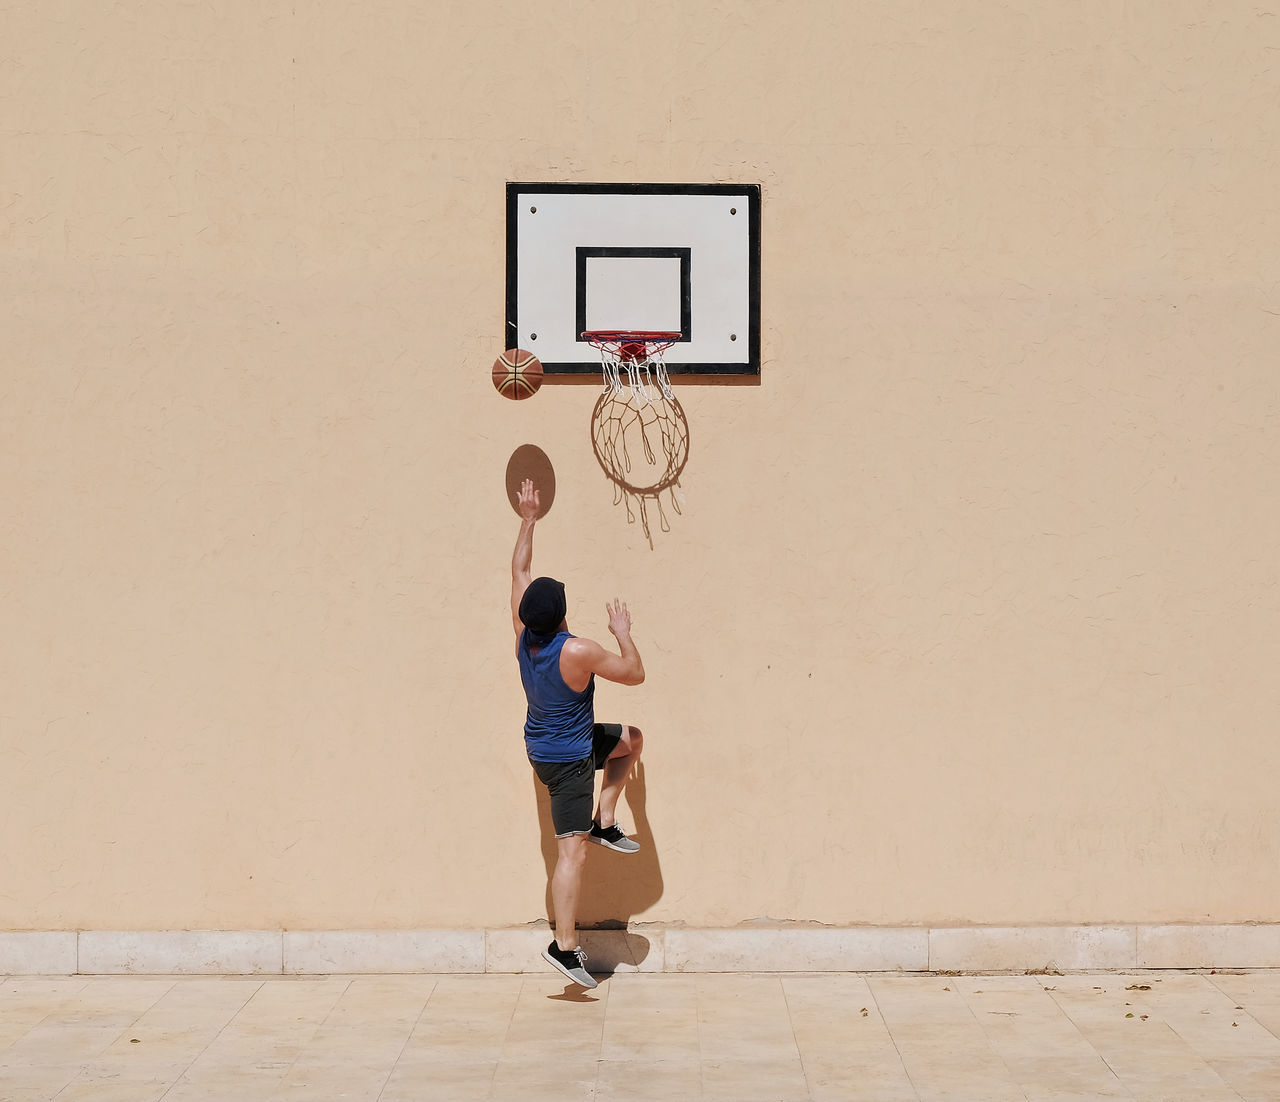 arid climate basketball - sport Basketball hoop Copy Space EyeEmNewHere full length healthy lifestyle high wall leisure activity light and shadow Males one person outdoors people playing Rear view Reflection simplicity